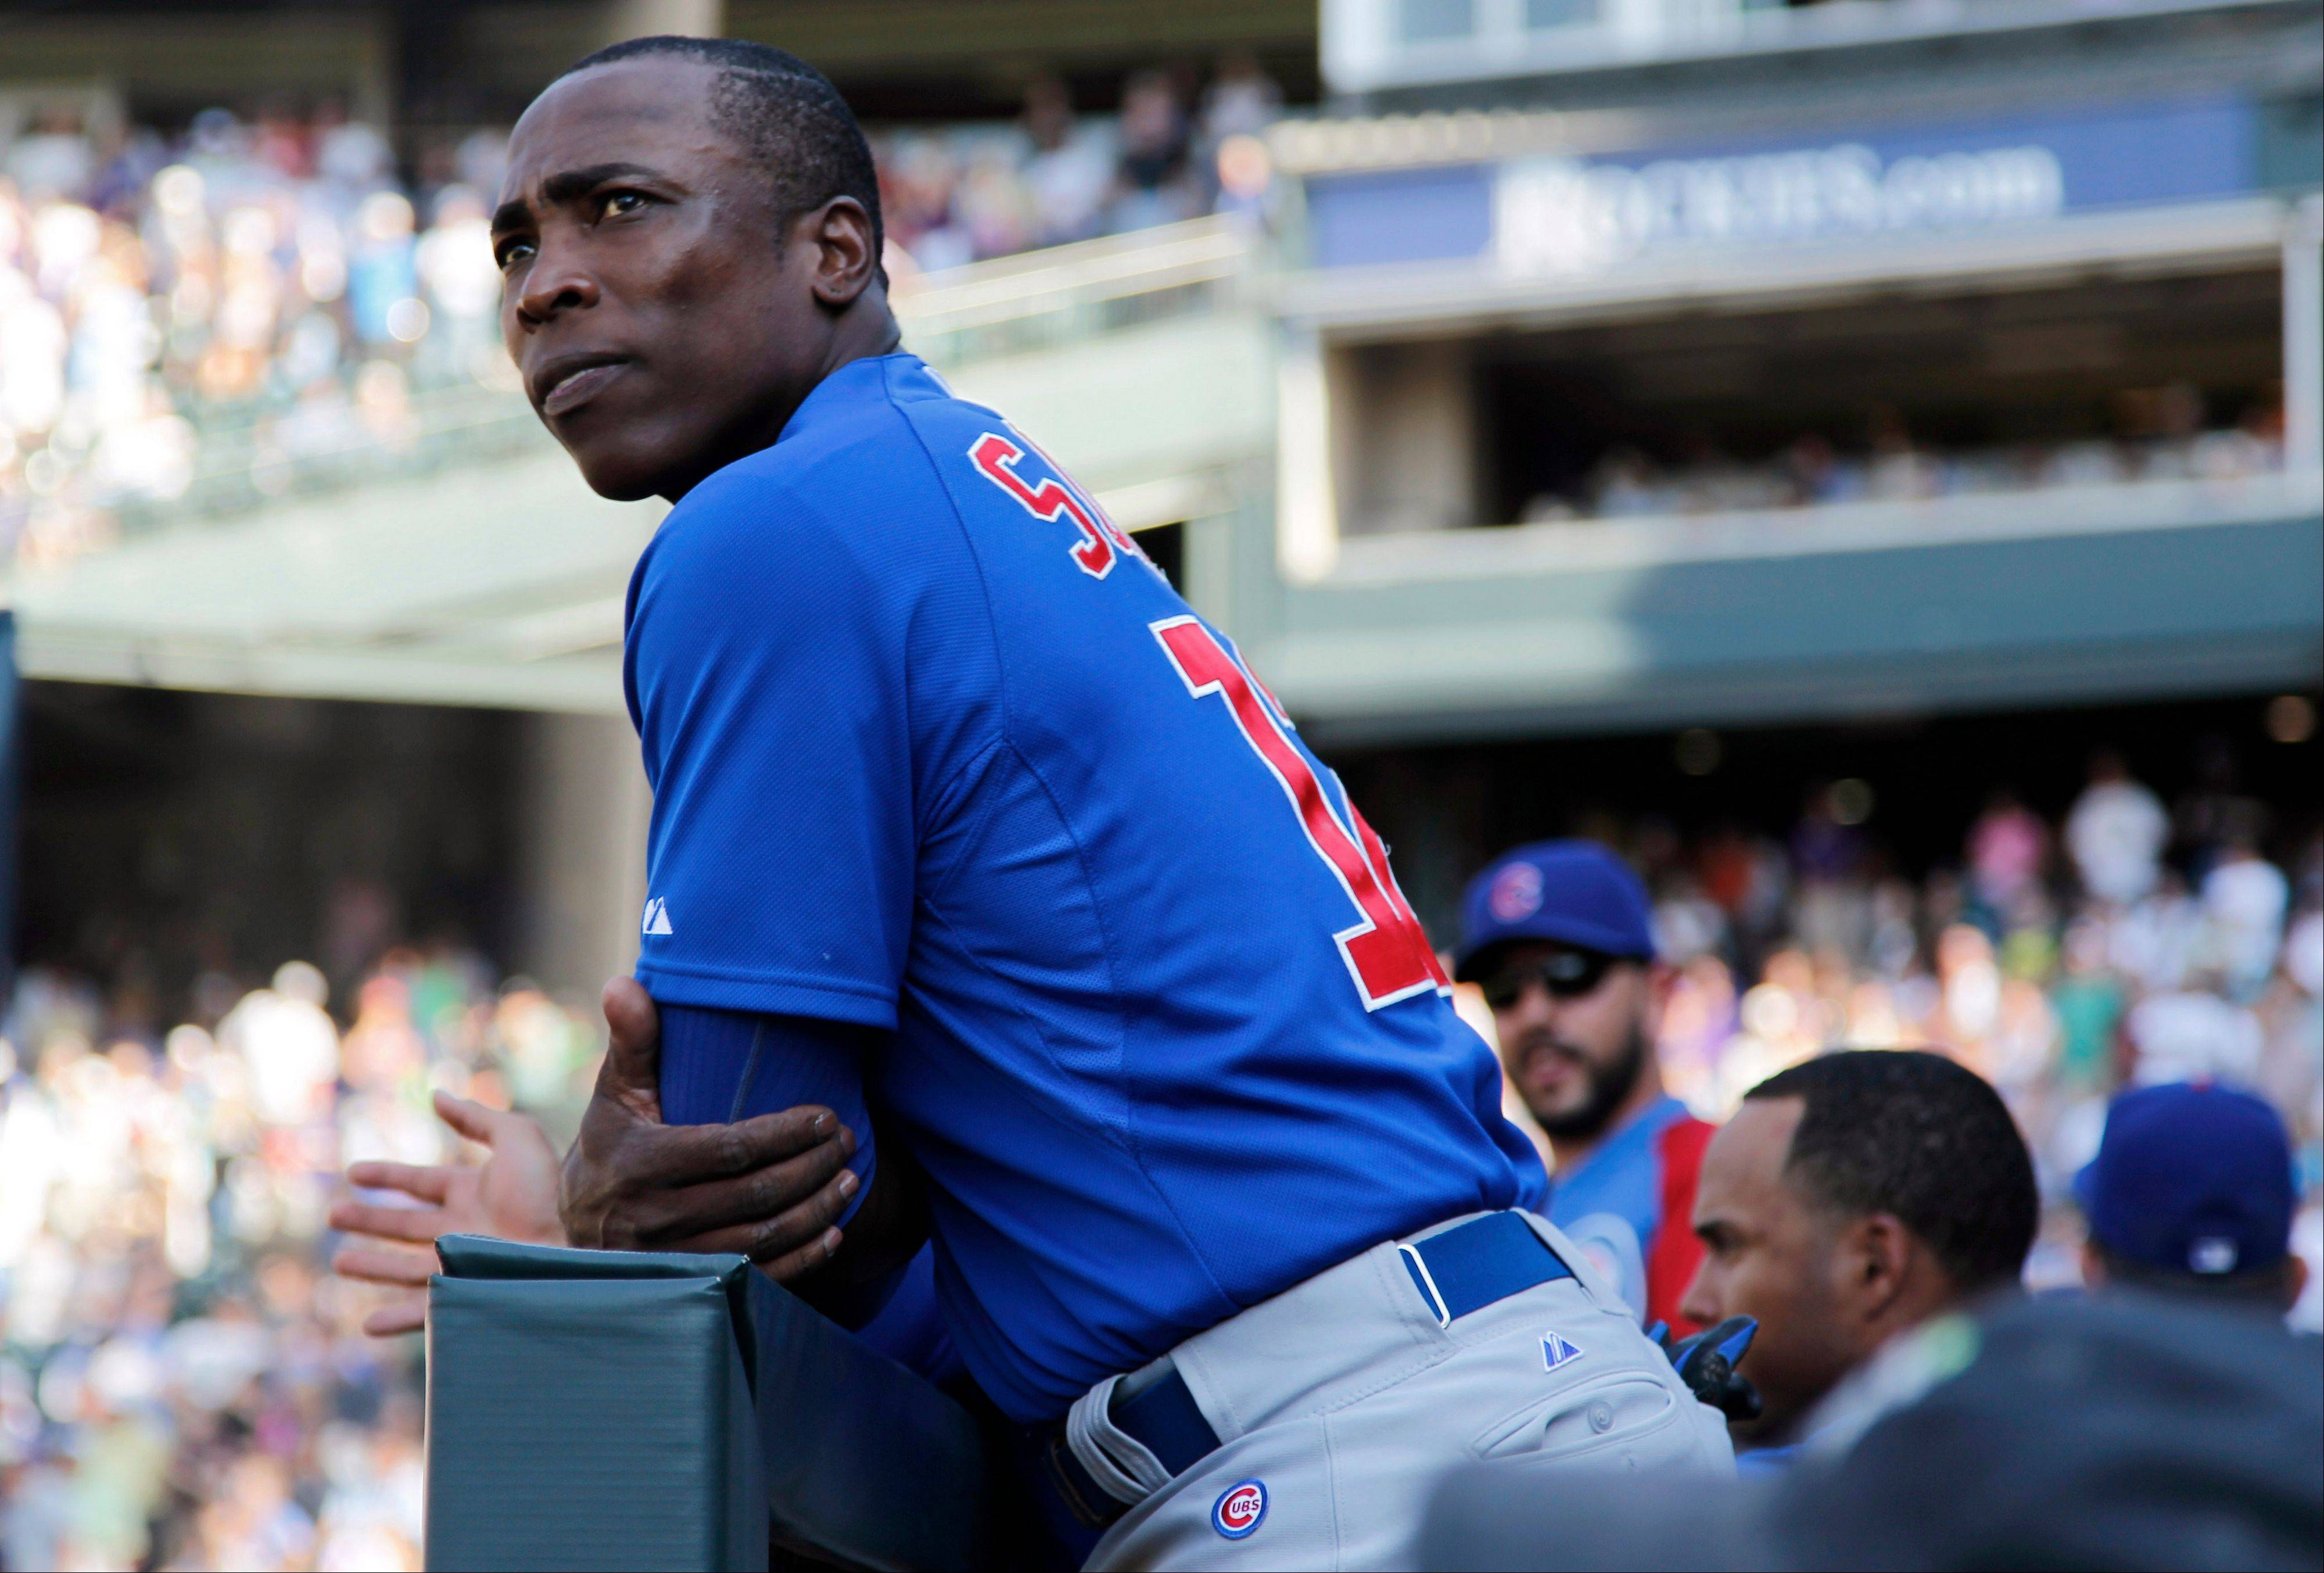 Chicago Cubs left fielder Alfonso Soriano leans against the front of the dugout as the Cubs were down to their final out against the Colorado Rockies in a baseball game in Denver on Sunday, July 21, 2013. The Rockies won 4-3. (AP Photo/David Zalubowski)